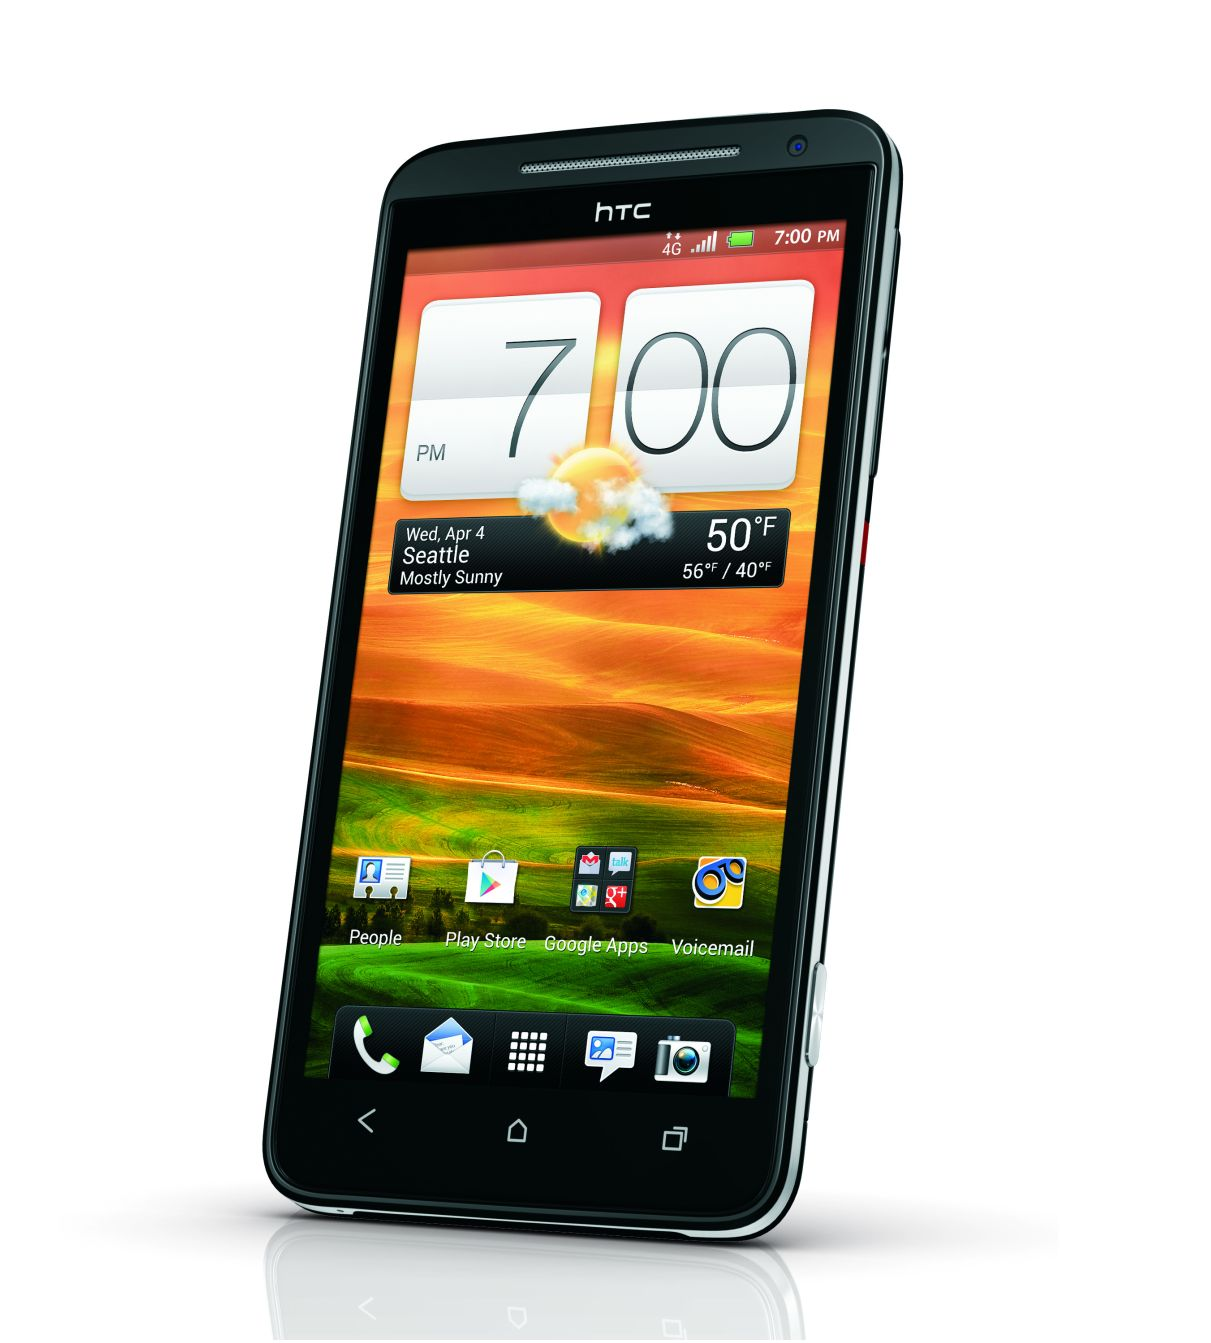 htc super tool released roots unlocks most devices itproportal rh itproportal com HTC One M7 HTC Hero